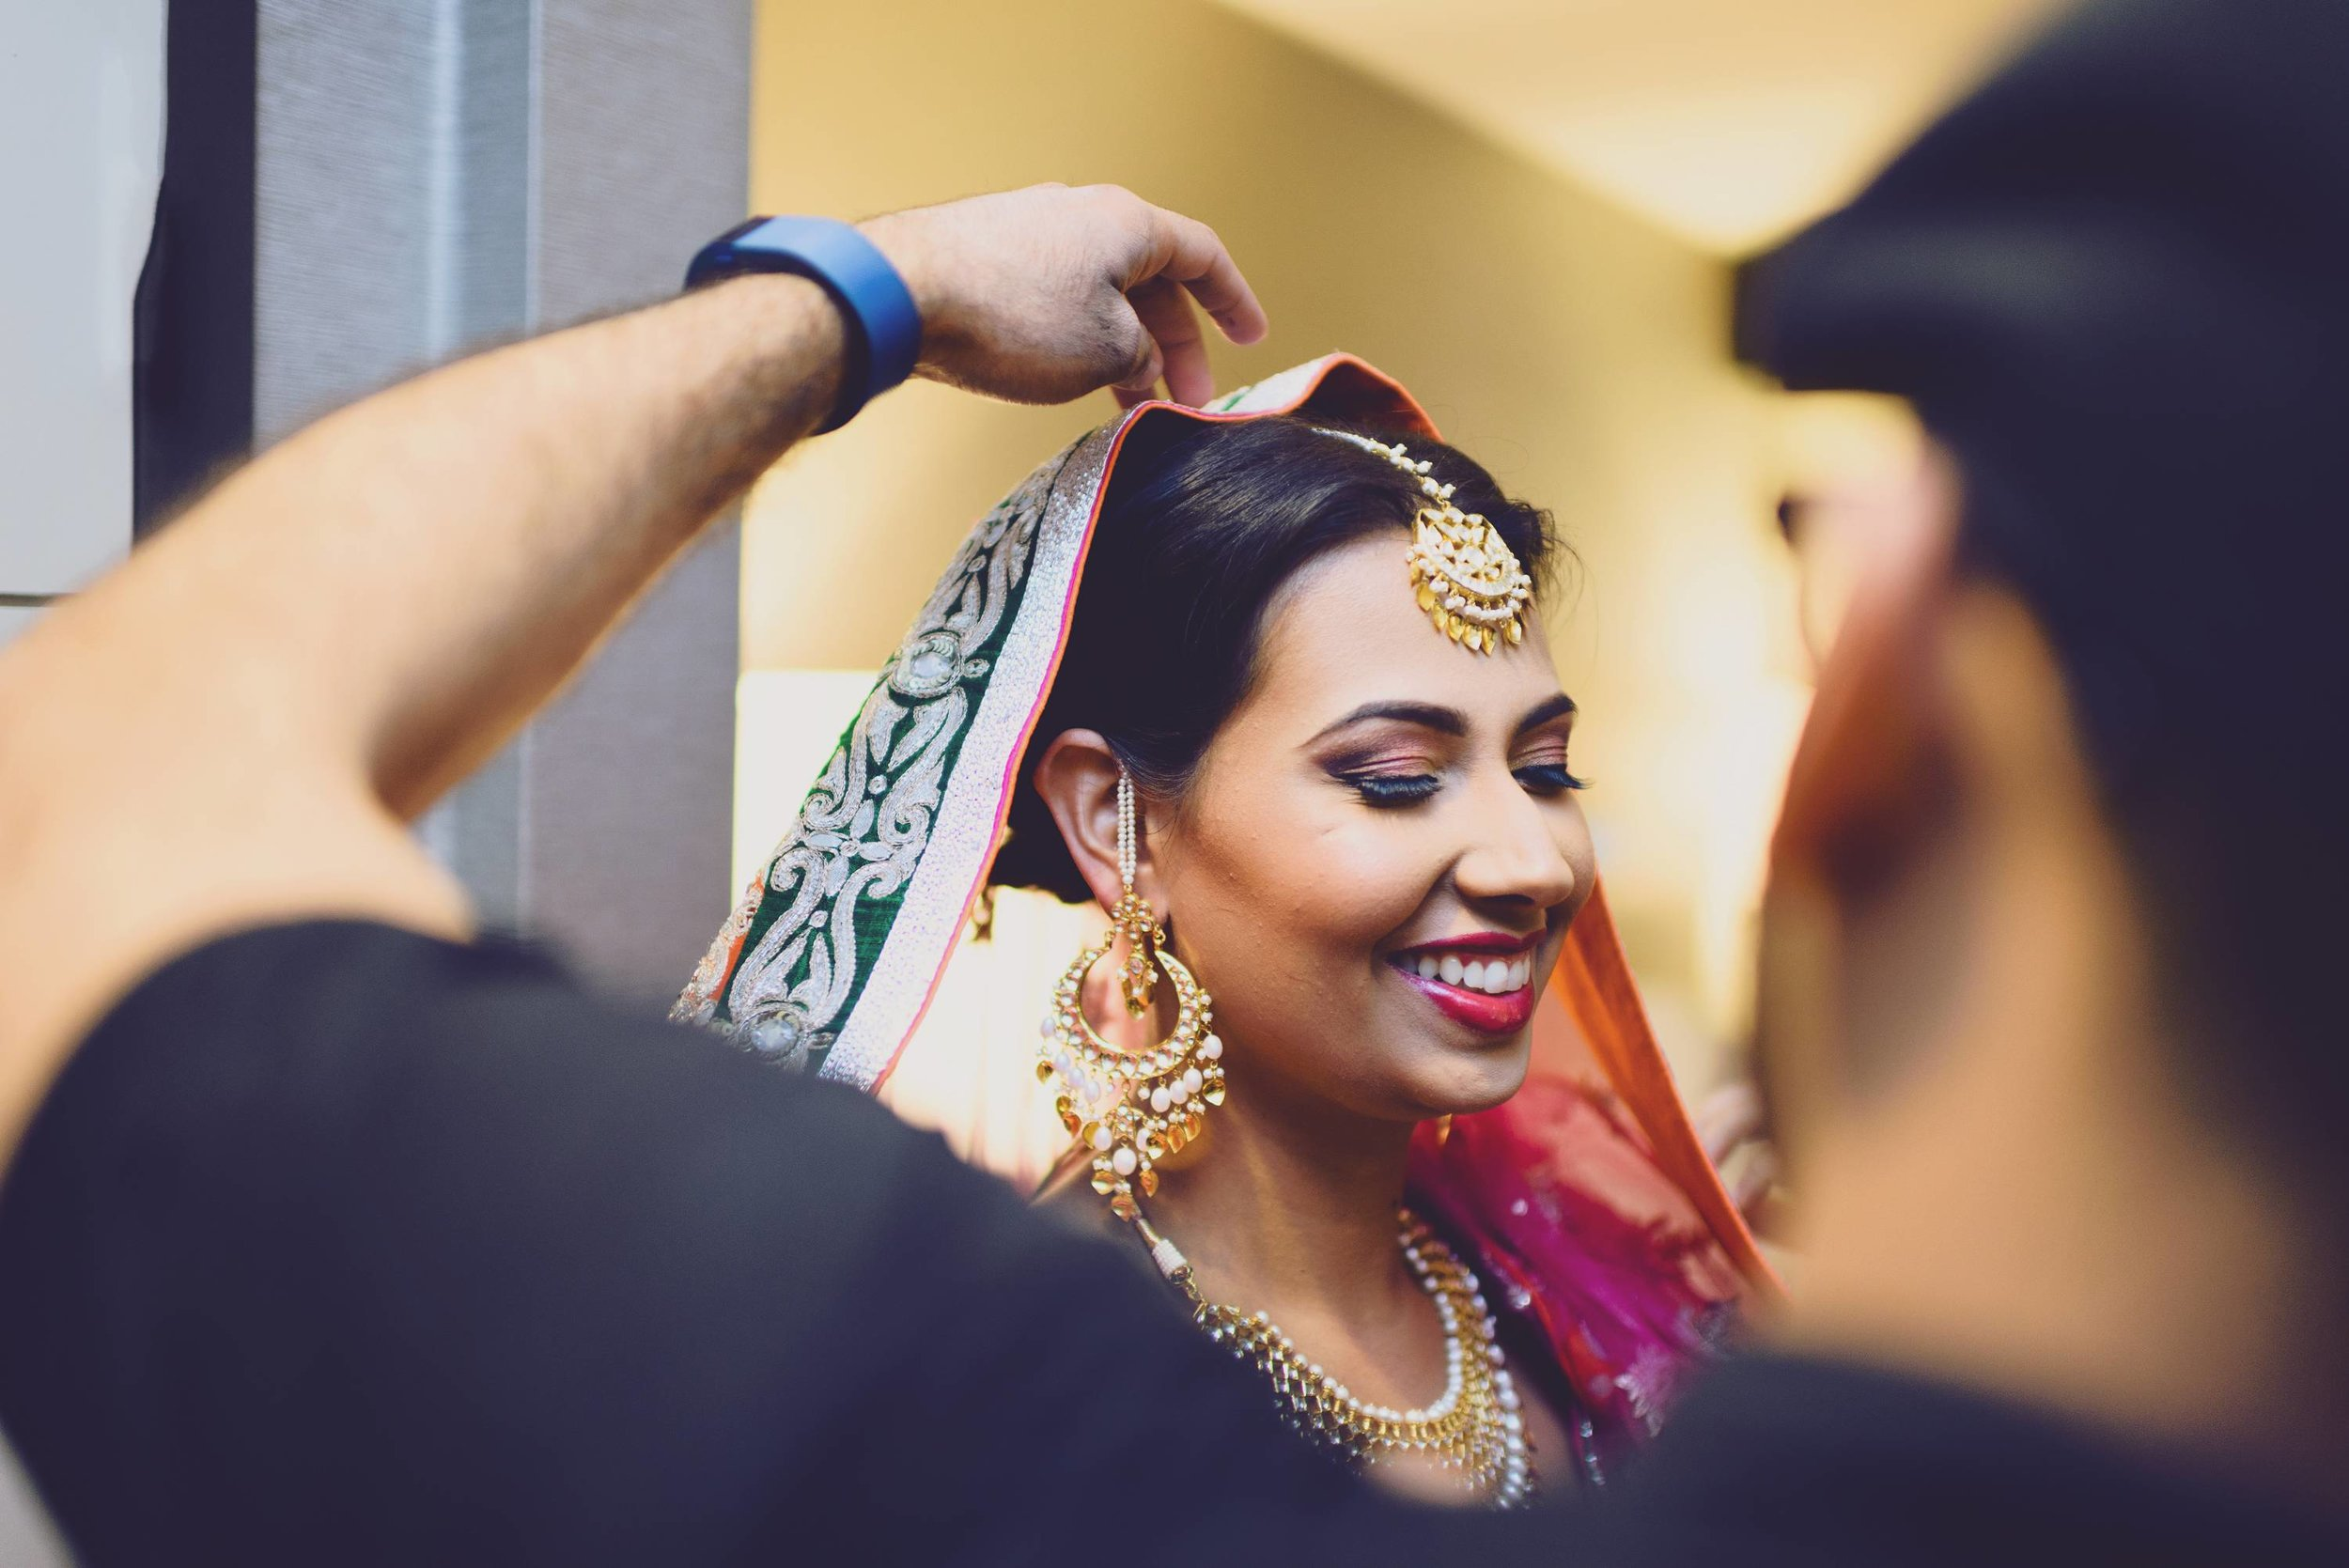 Sim looked alluring in her hot pink & orange lehenga. She wore this dress for her south asian sikh wedding. Indian weddings are known for vibrant colors and extravagant bridal gowns.